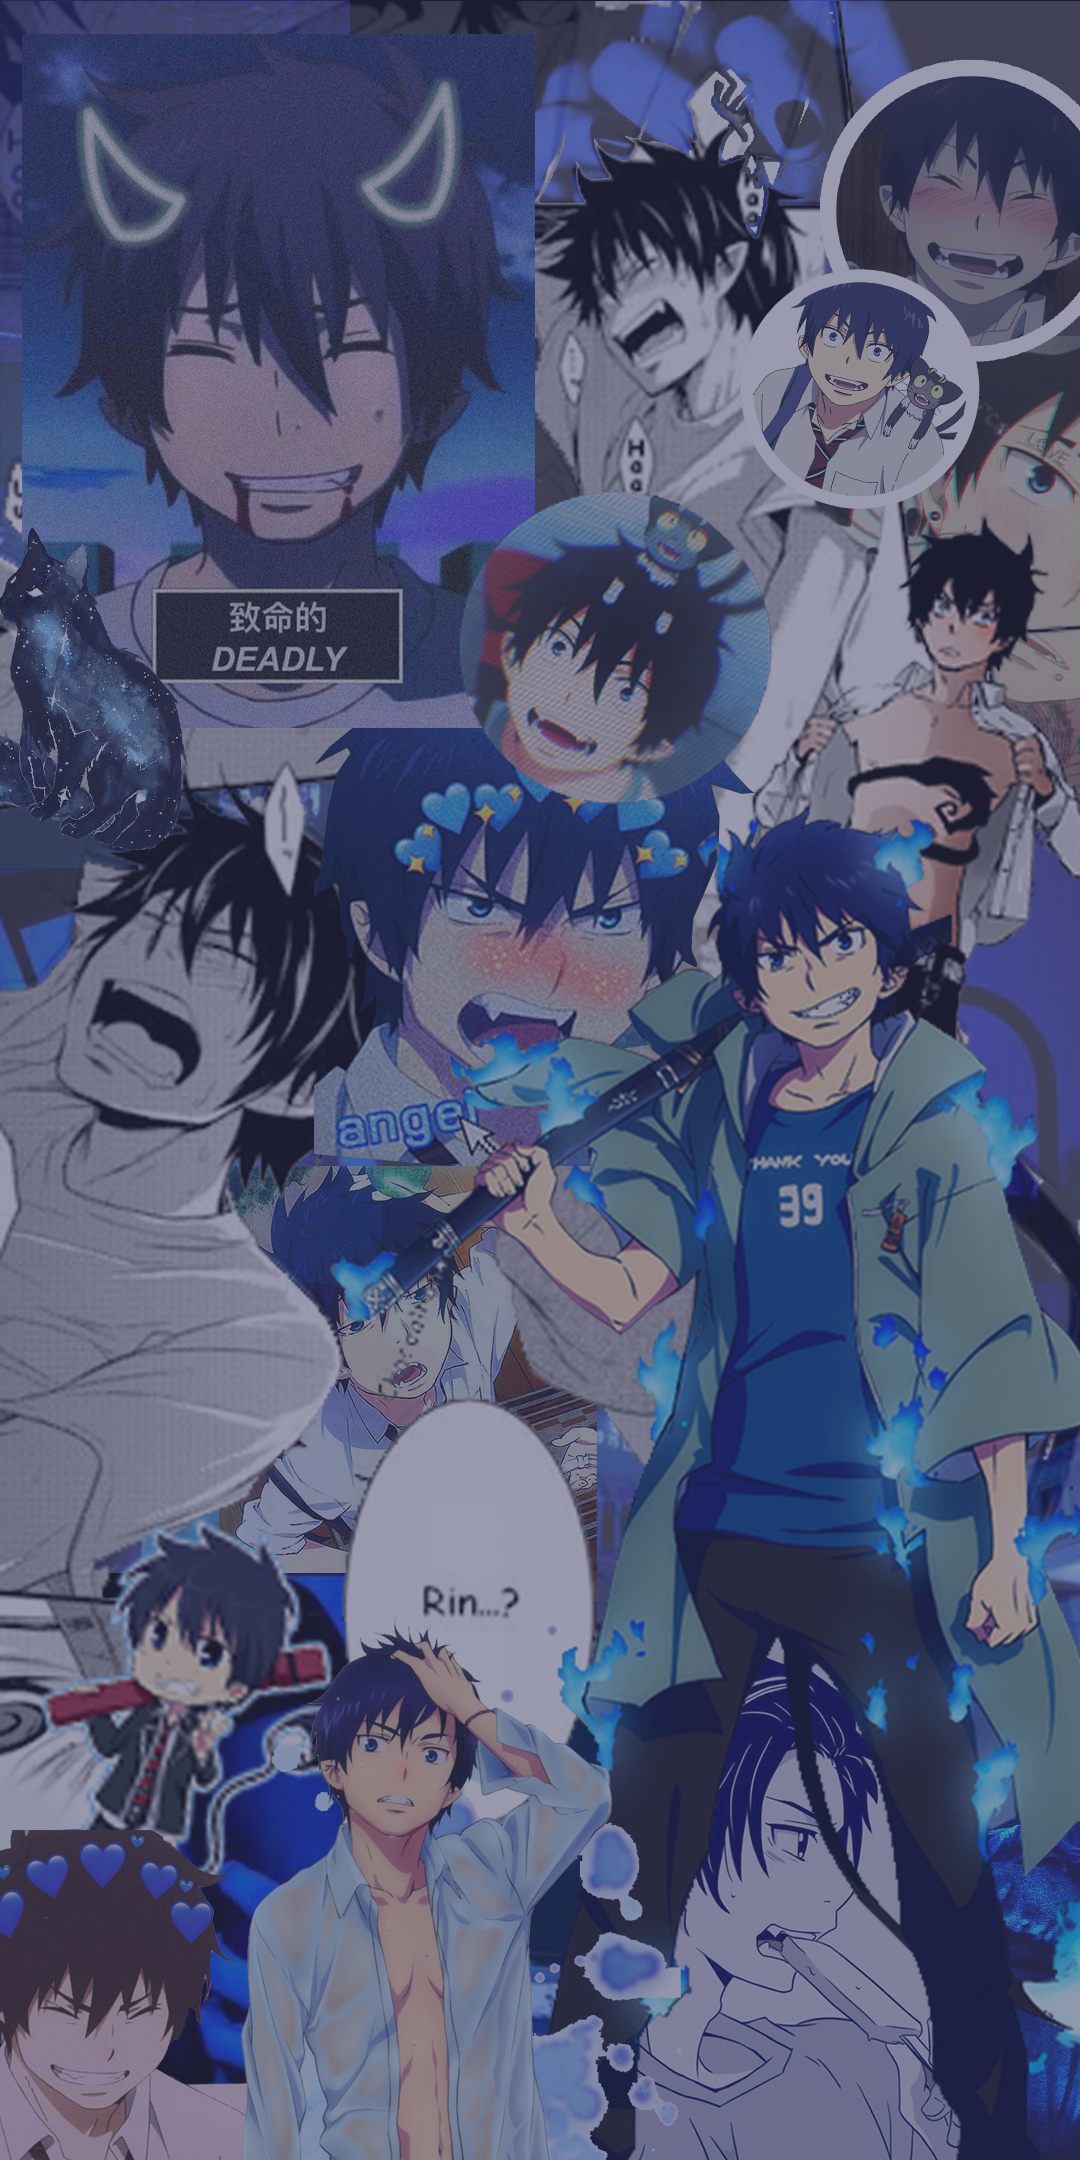 Pin By Kennedy On Wallpapers In 2020 With Images Blue Exorcist